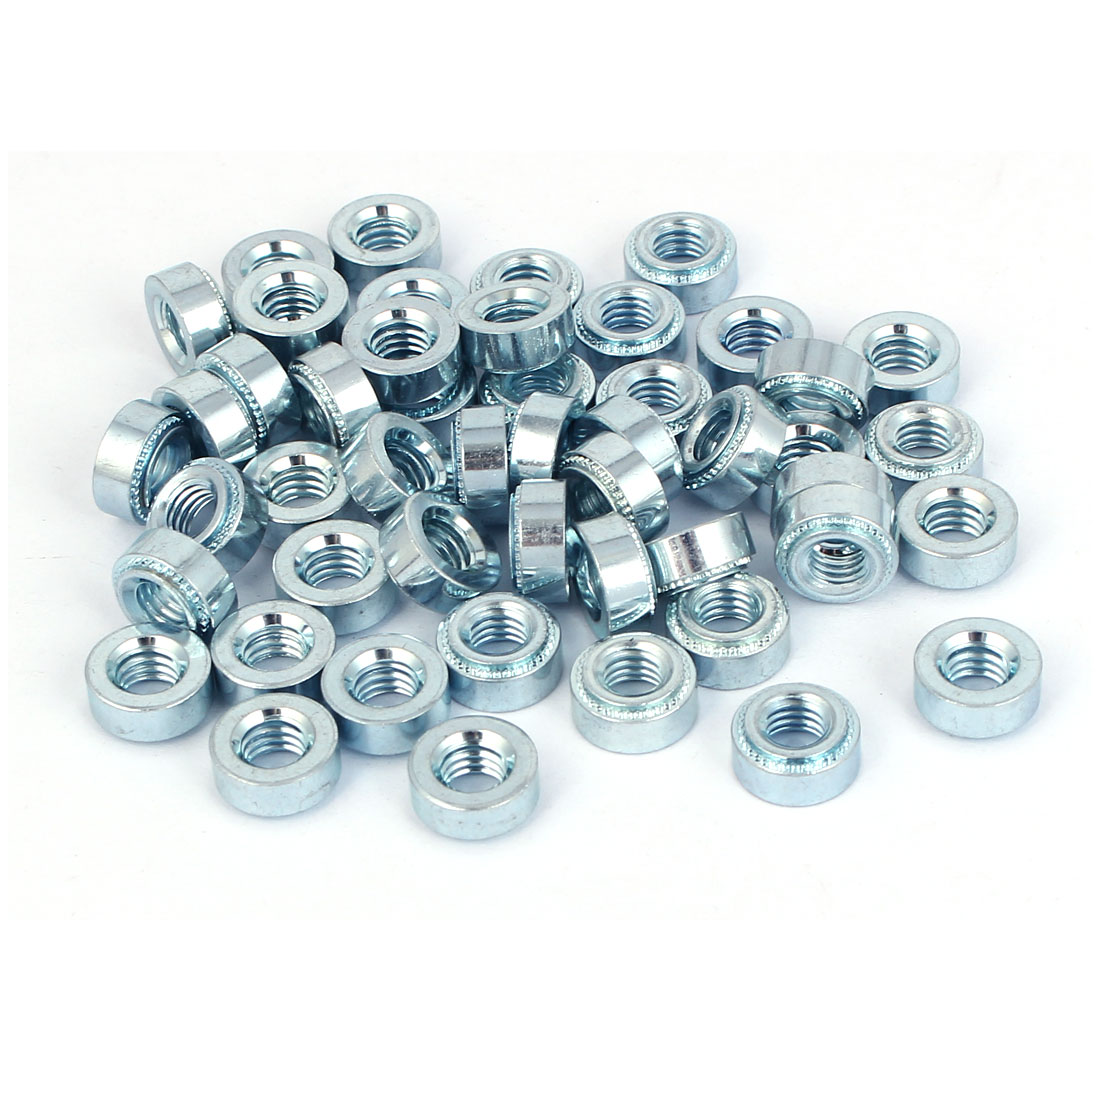 Carbon Steel Self Clinching Nut 6mm Thread Dia 50pcs for 1.2mm Thin Plates